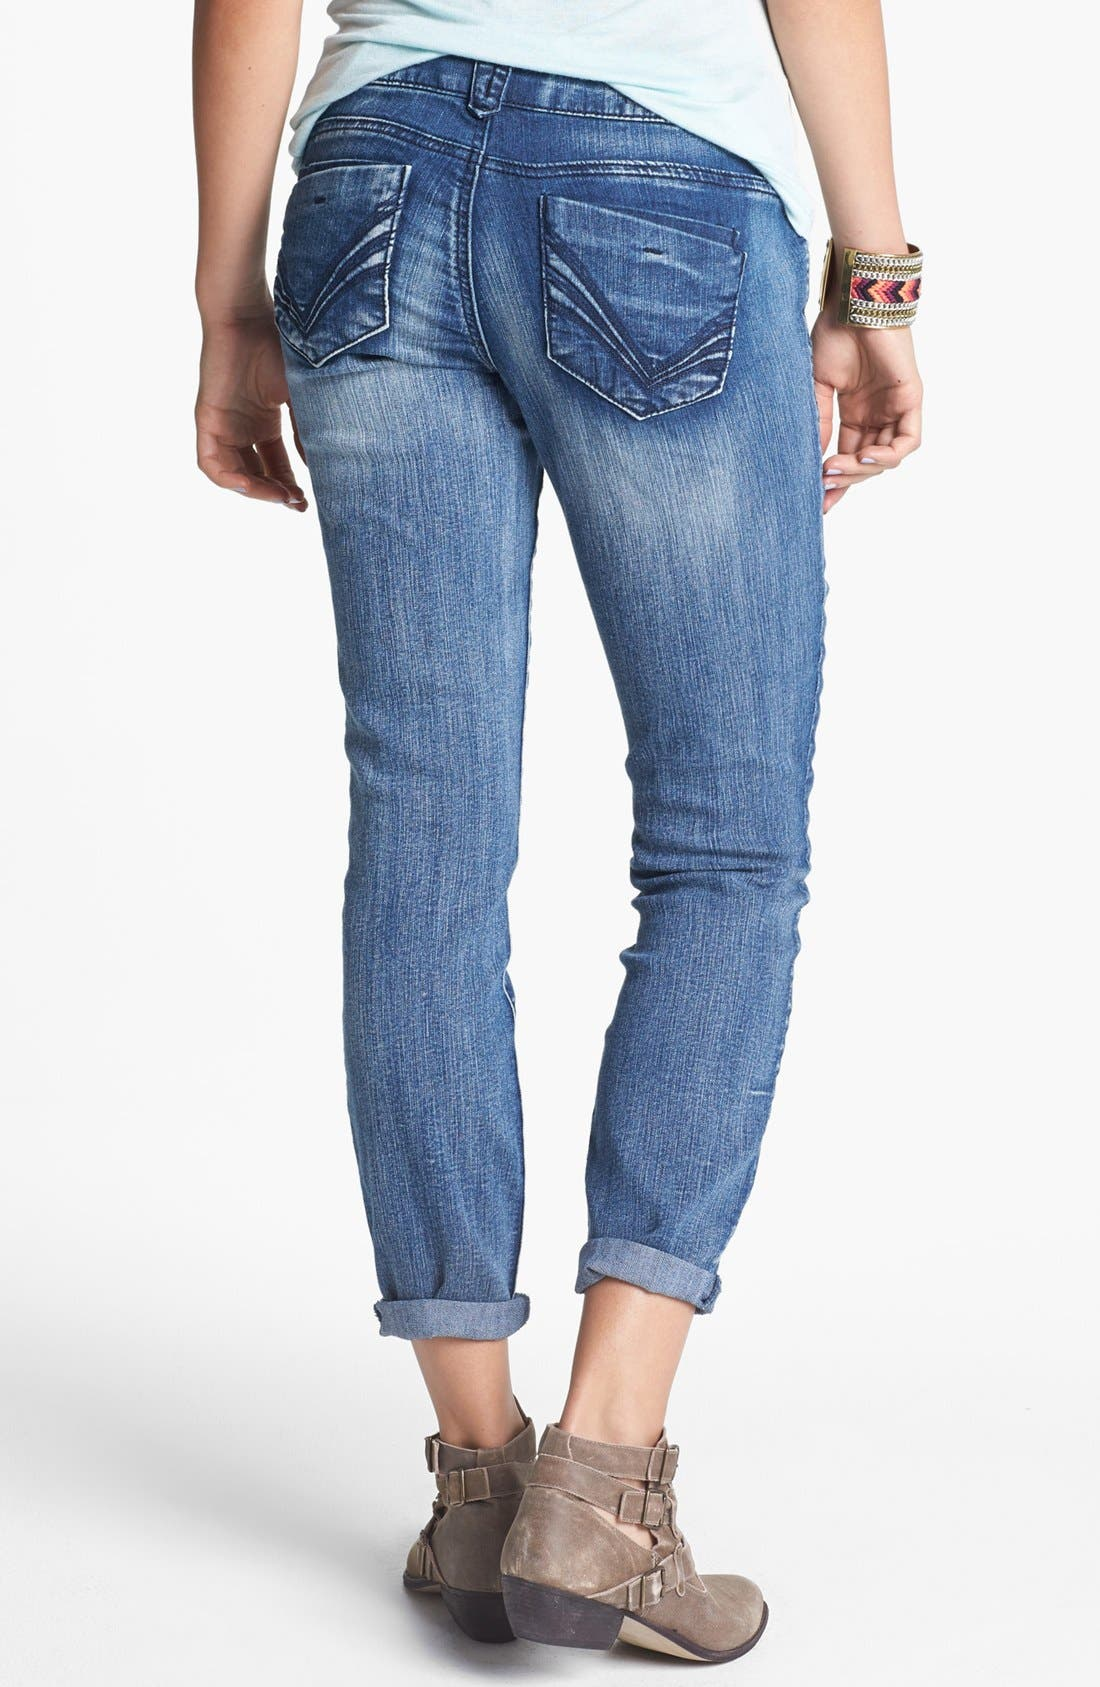 Alternate Image 1 Selected - Jolt Skinny Jeans (Indigo) (Juniors) (Online Only)